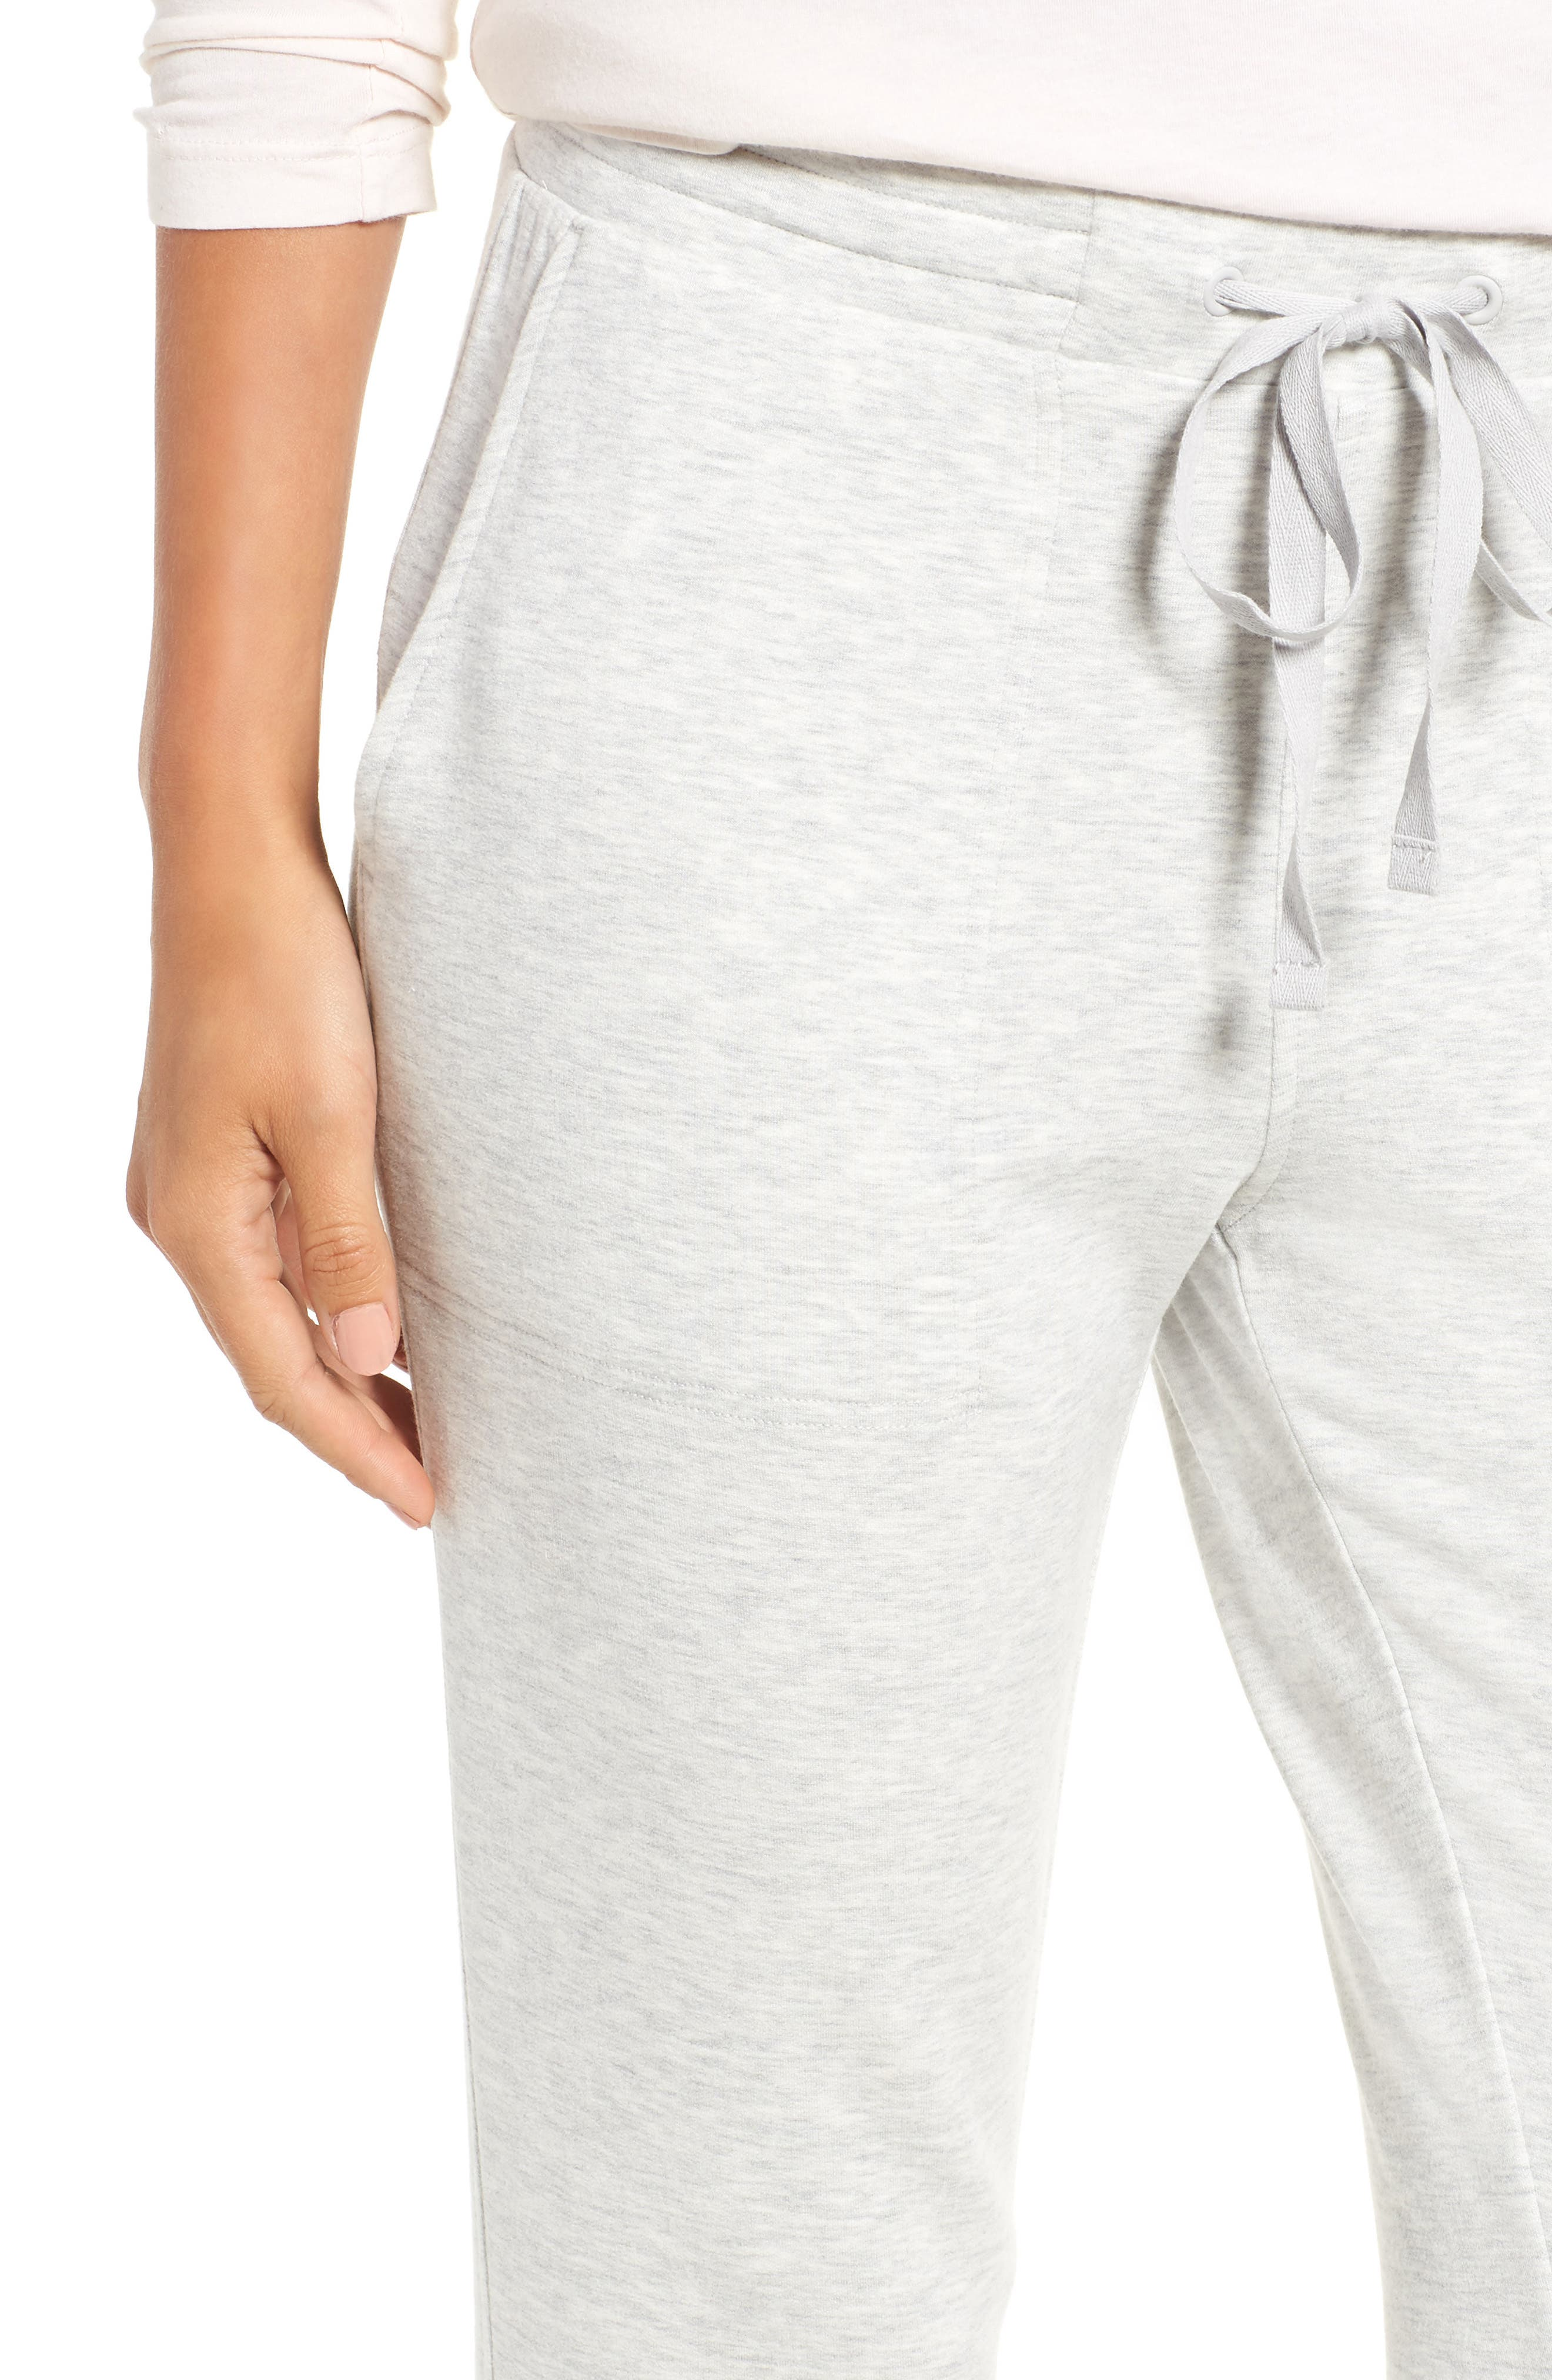 Zen Bounce Upstate Sweatpants,                             Alternate thumbnail 6, color,                             SLEEK HEATHER GREY